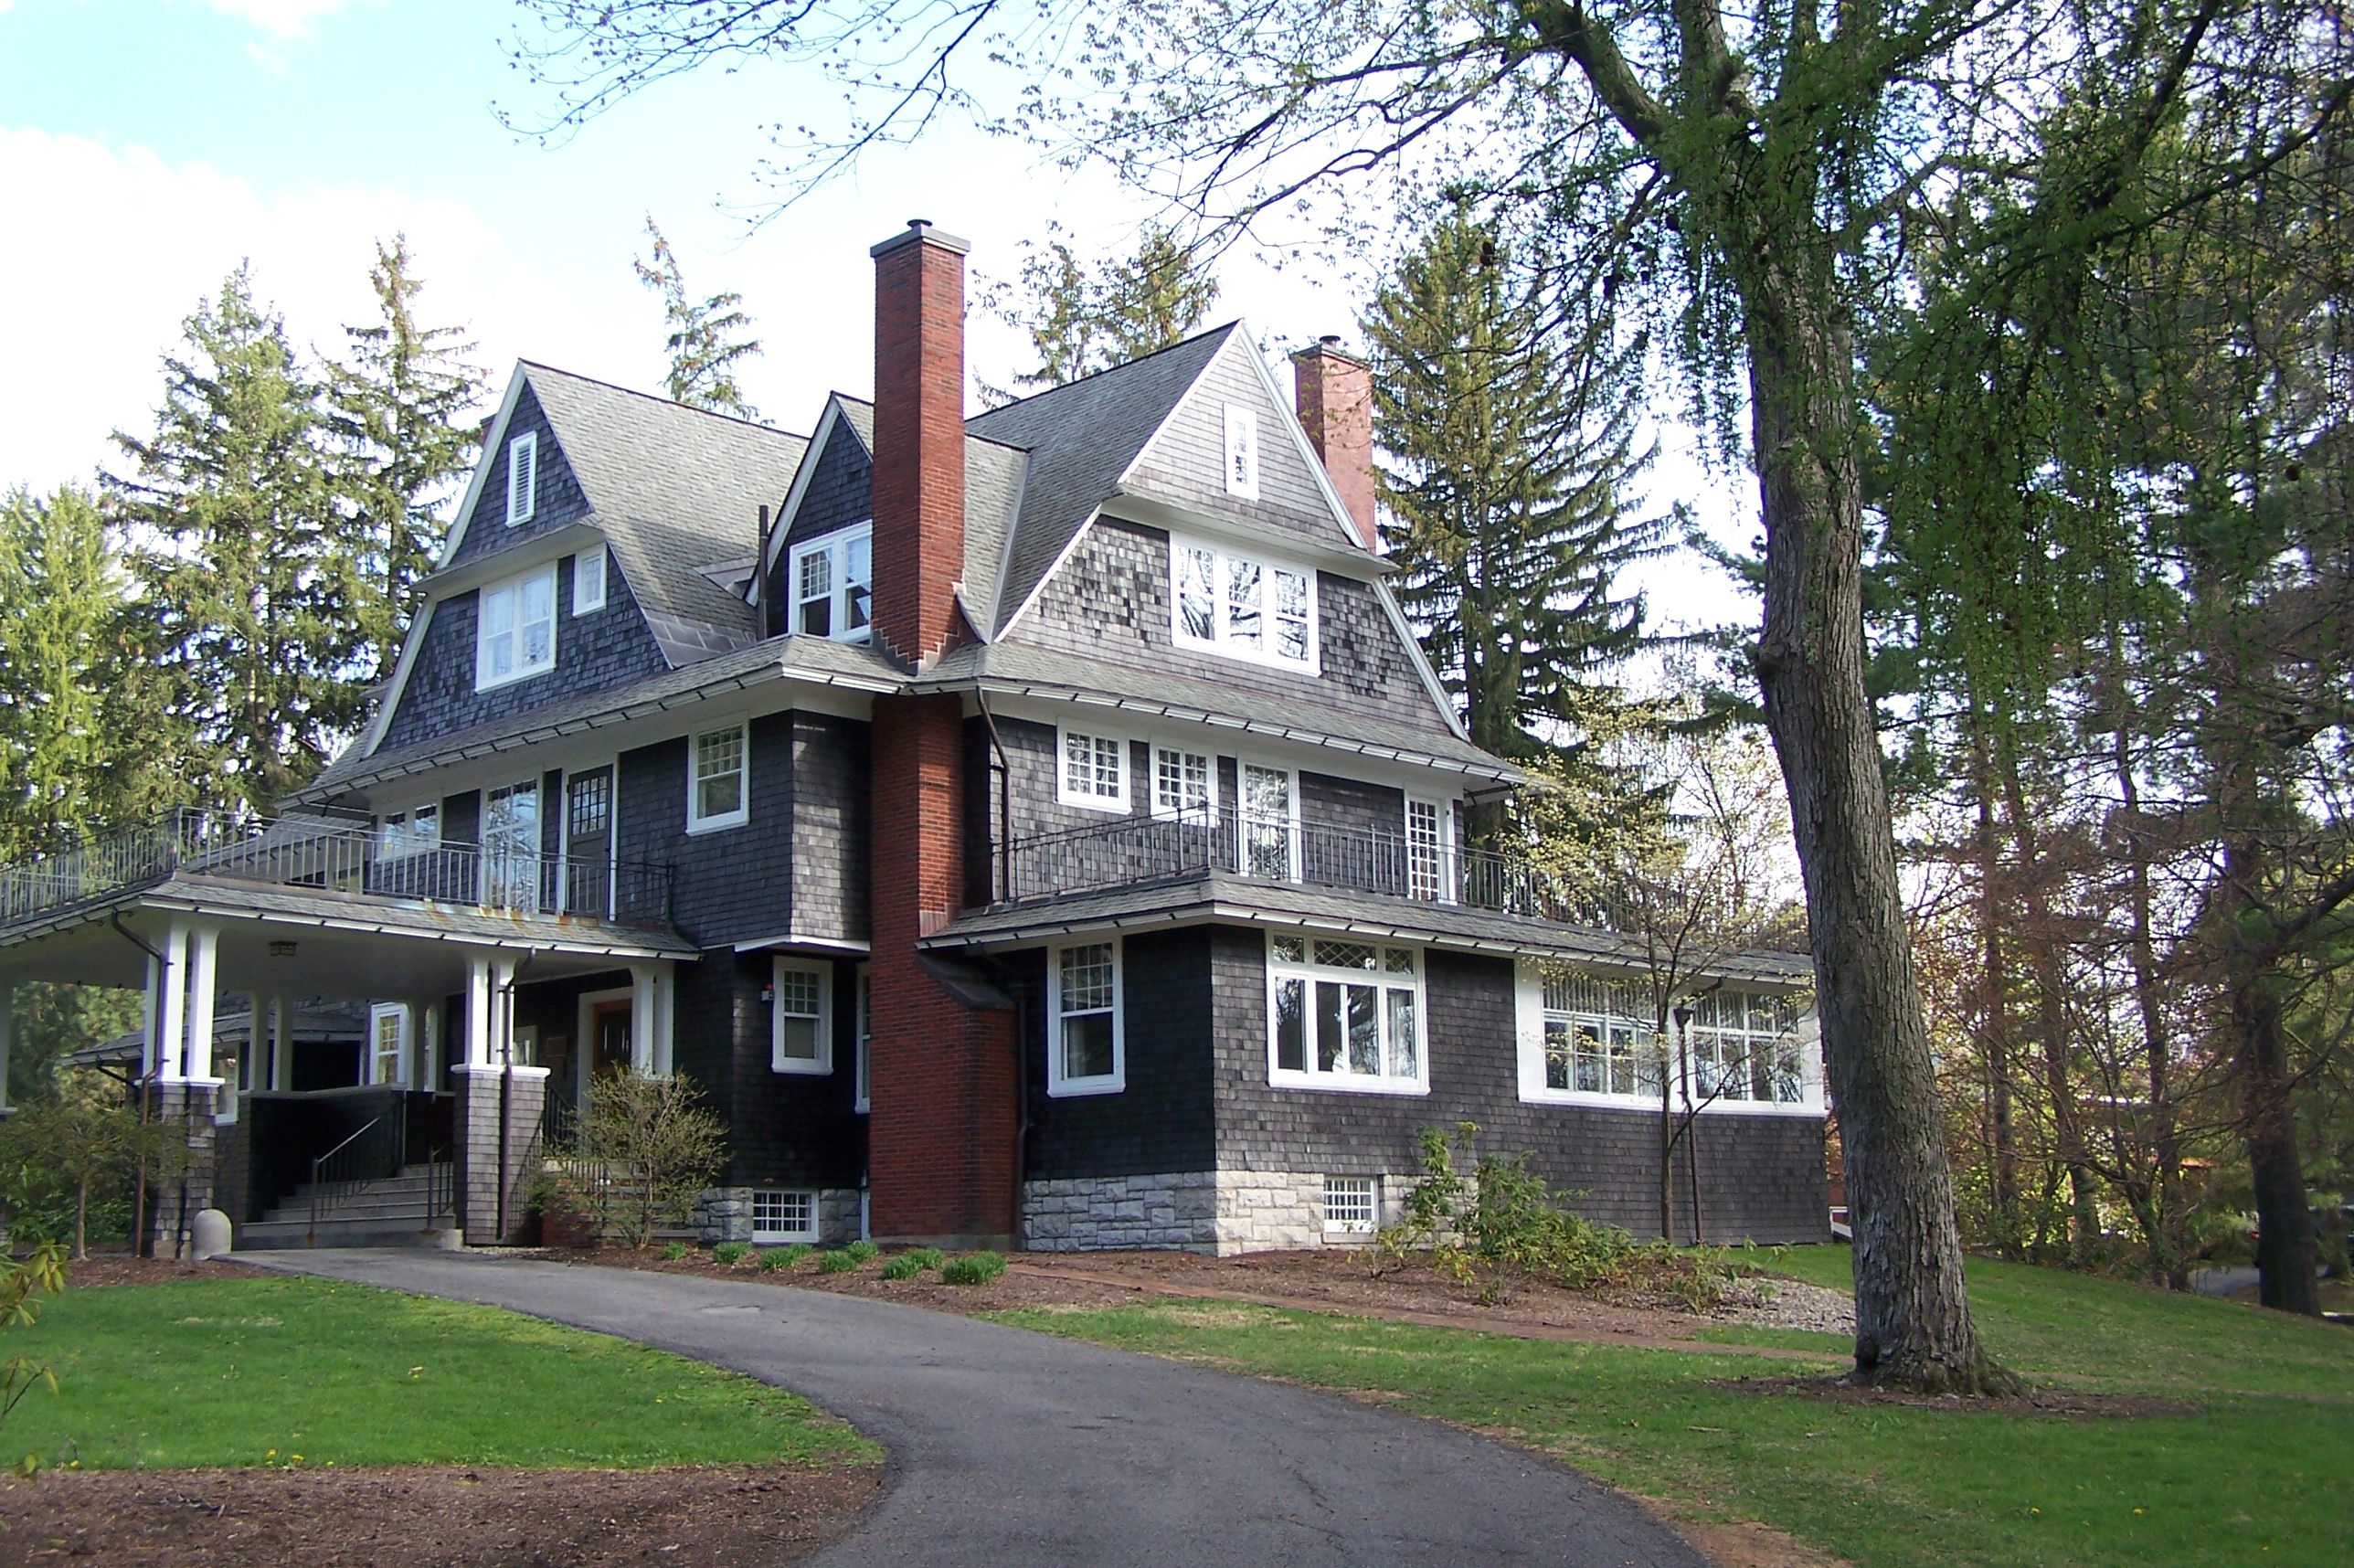 large gray house with tall red chimneys, multiple gables with windows up to a fourth level, side porch extends to car port